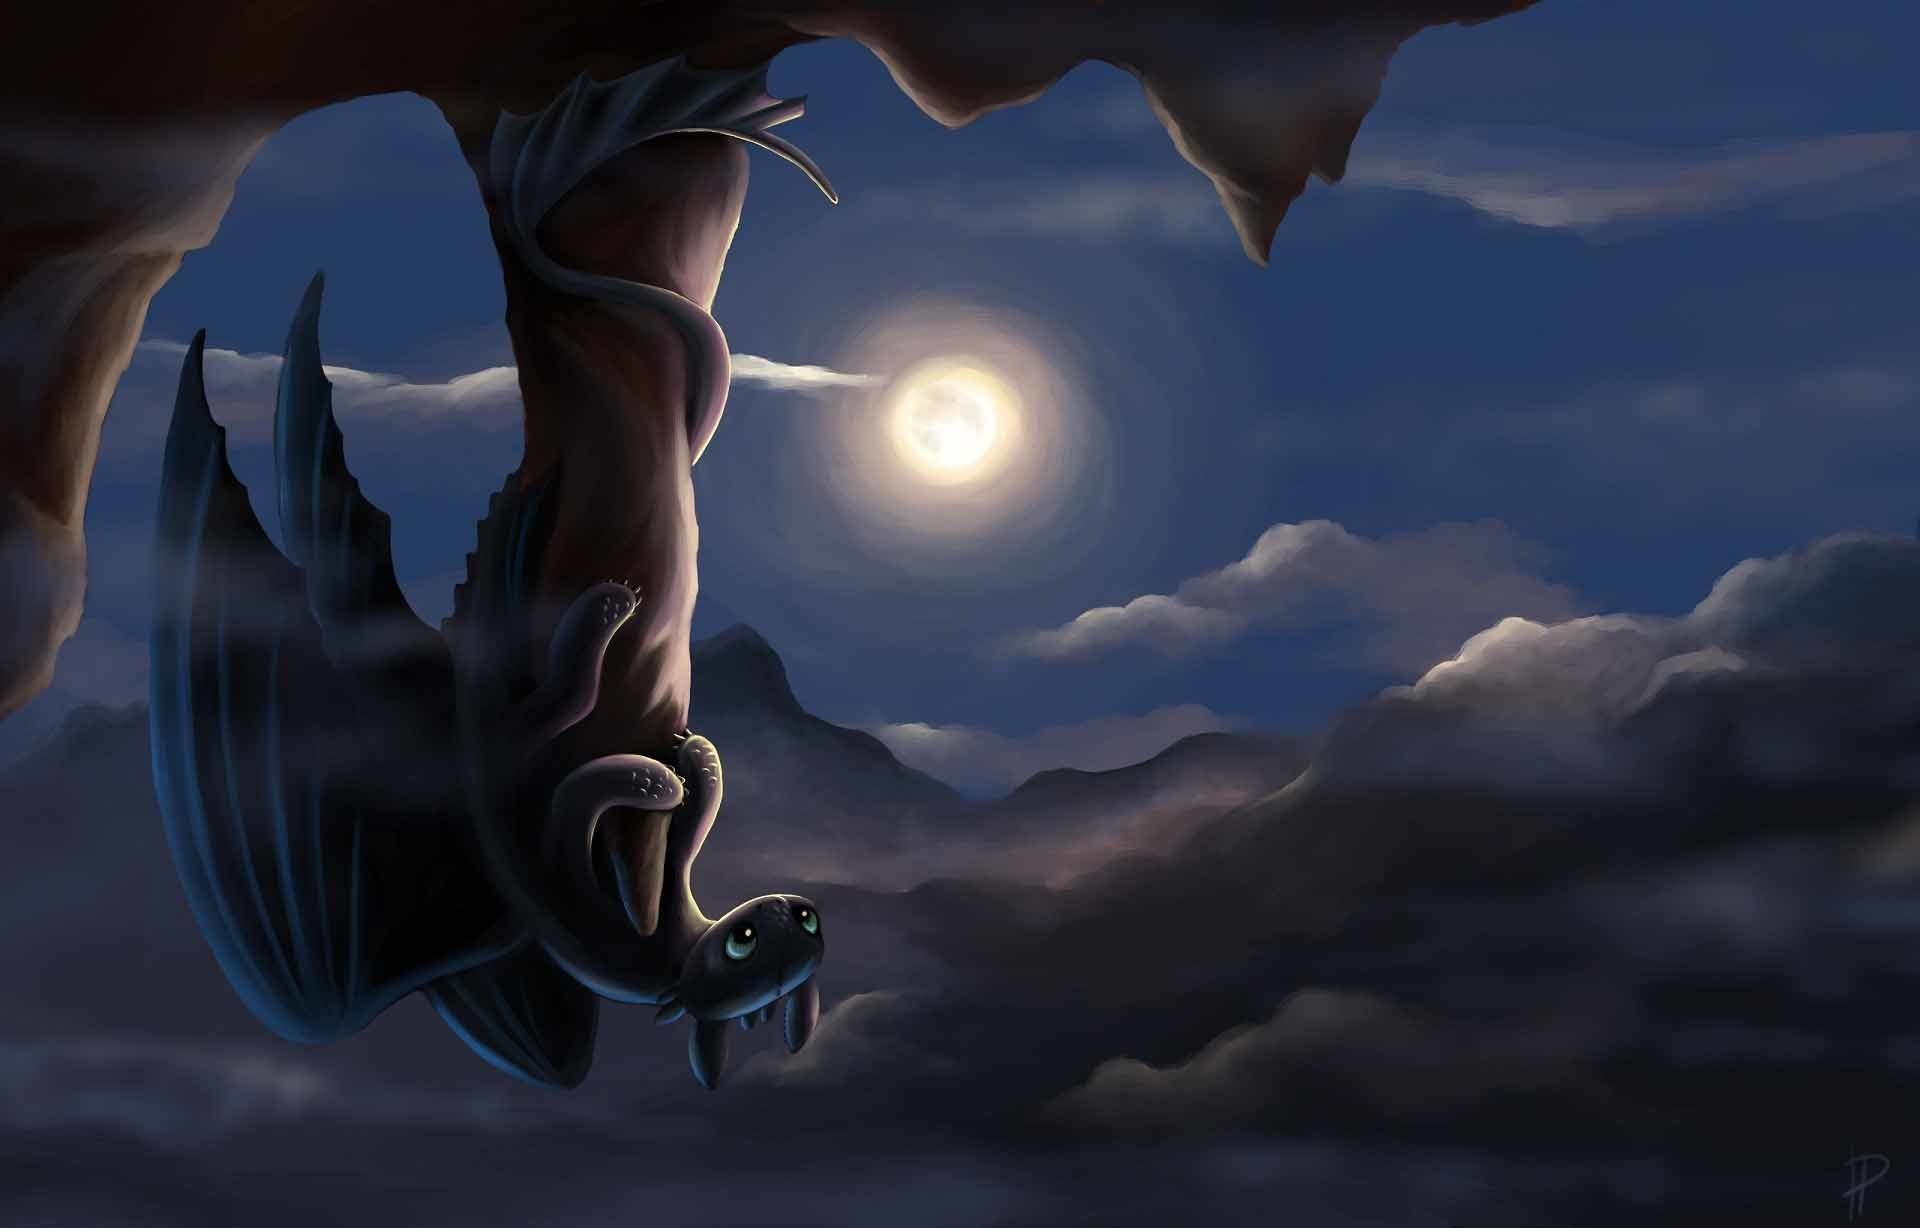 Night fury wallpaper 74 images - How to train your dragon hd download ...